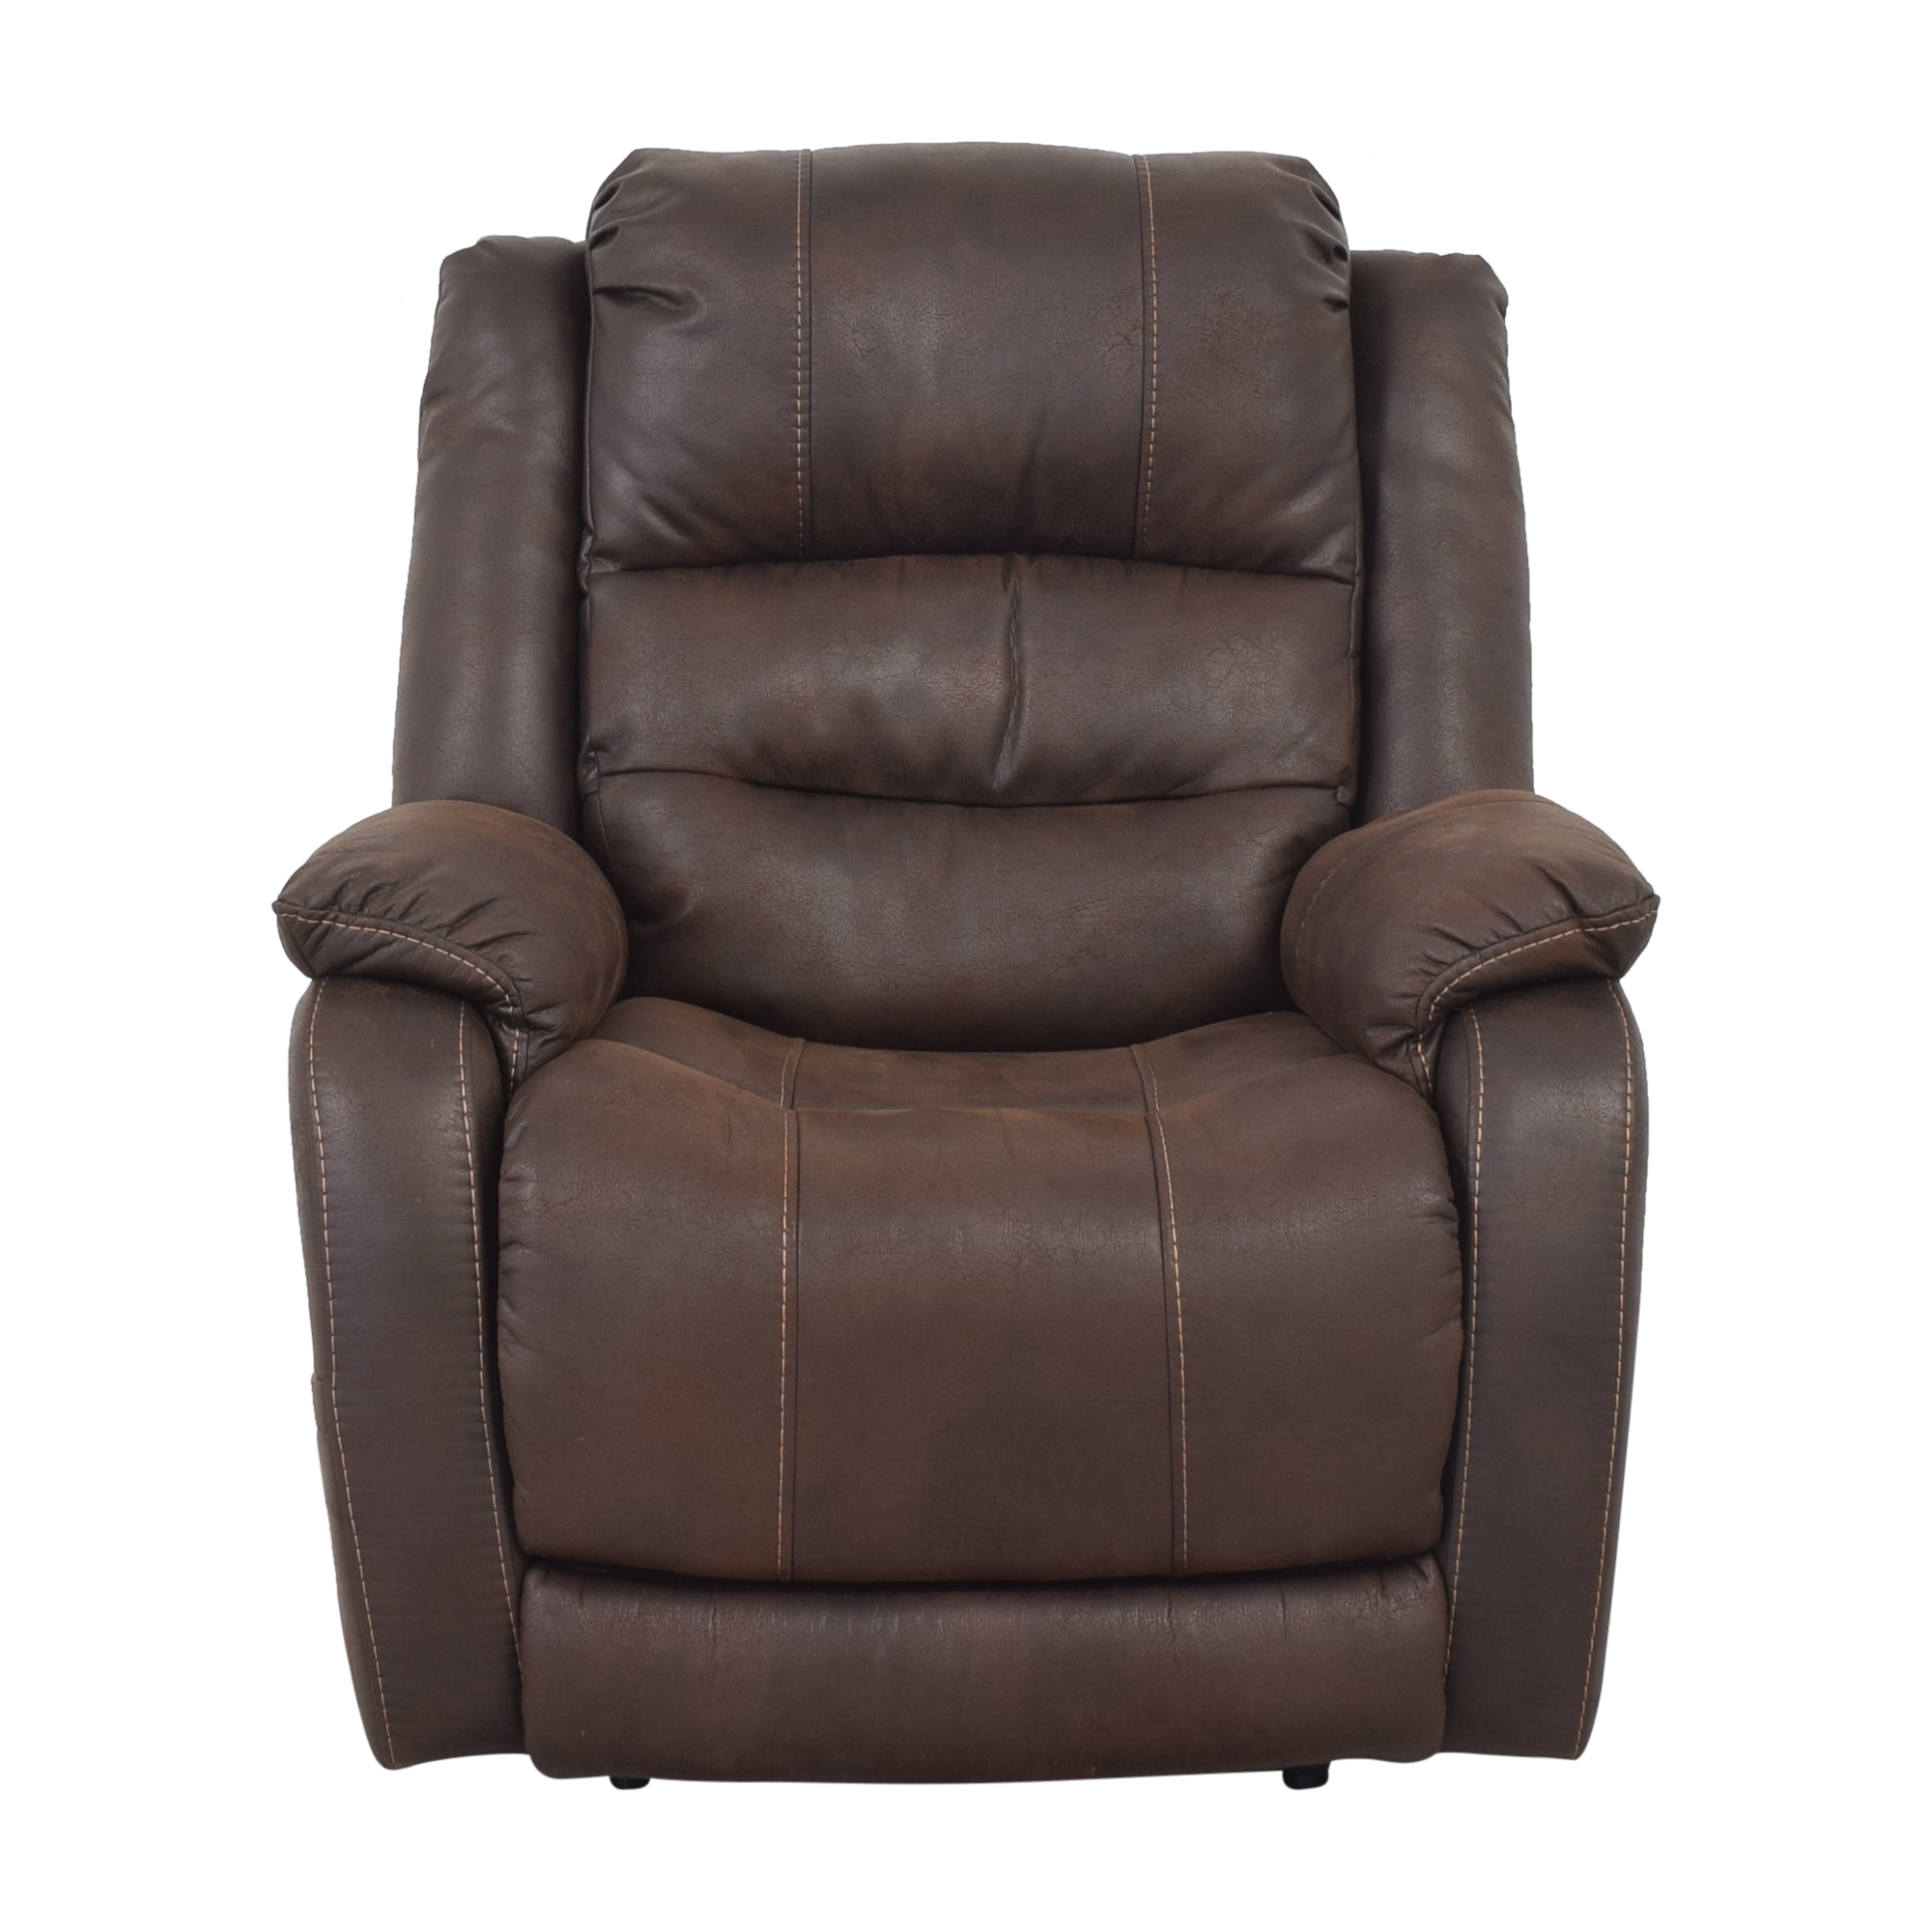 buy Raymour & Flanigan Zachary Power Recliner Raymour & Flanigan Recliners